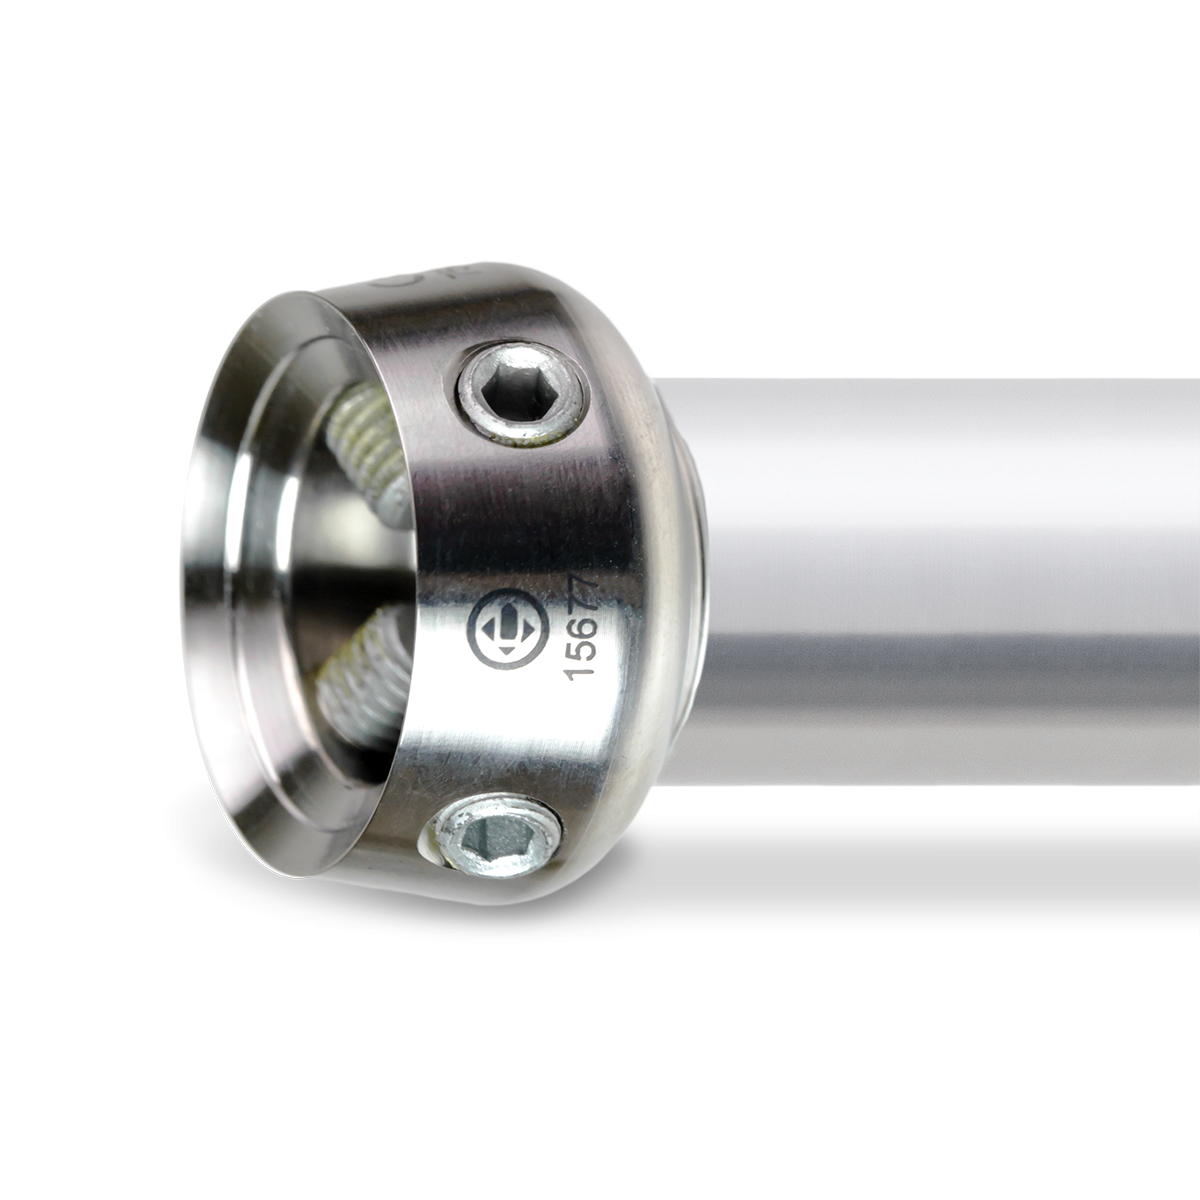 25 mm LP Tube Adapter with Adult Receiver, Titanium, 300 mm